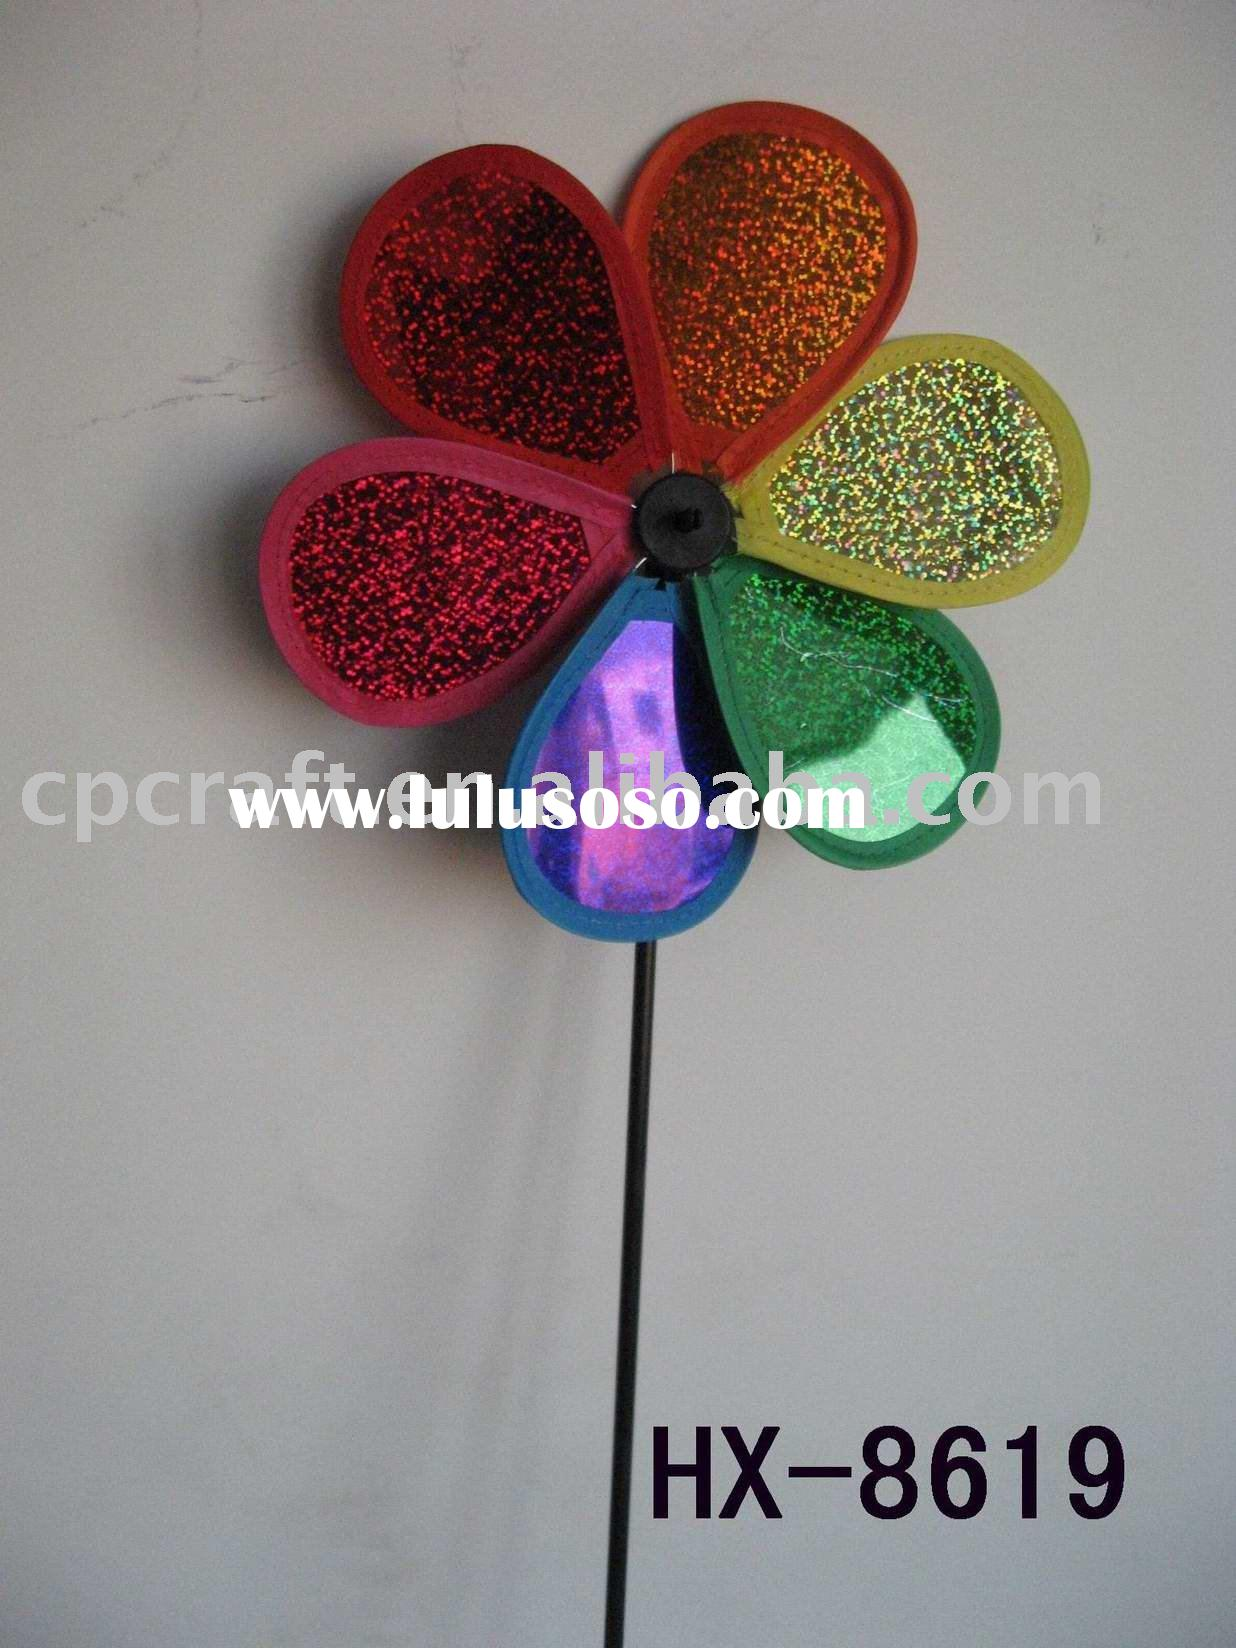 Craft art garden outdoor decoration plastic windmill pinwheel wind wheel